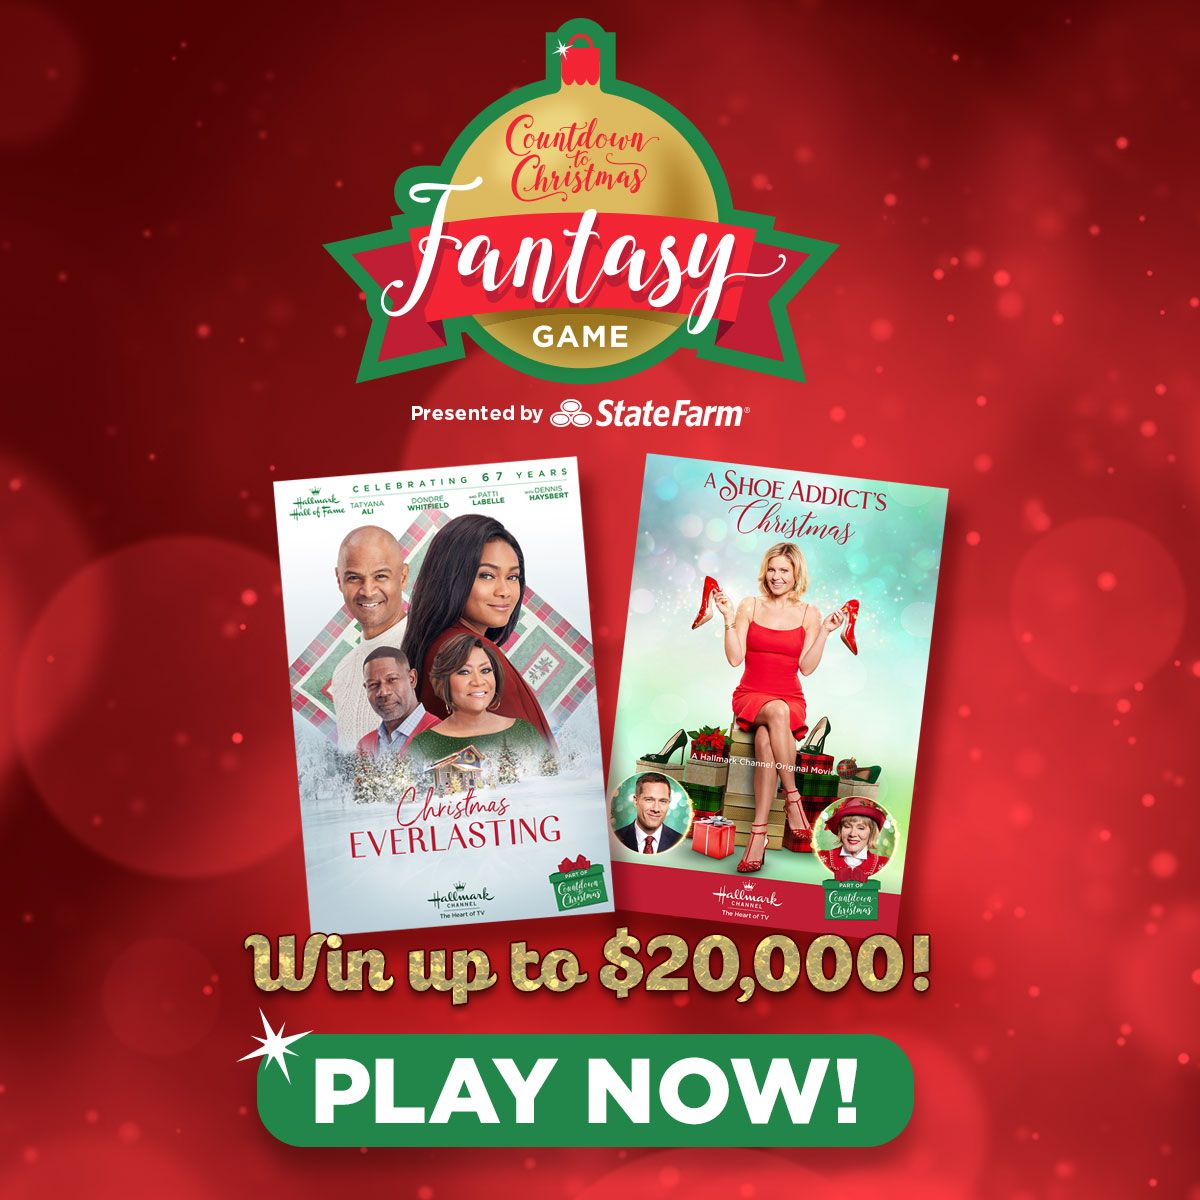 Sign up and play the Countdown to Christmas Fantasy Game